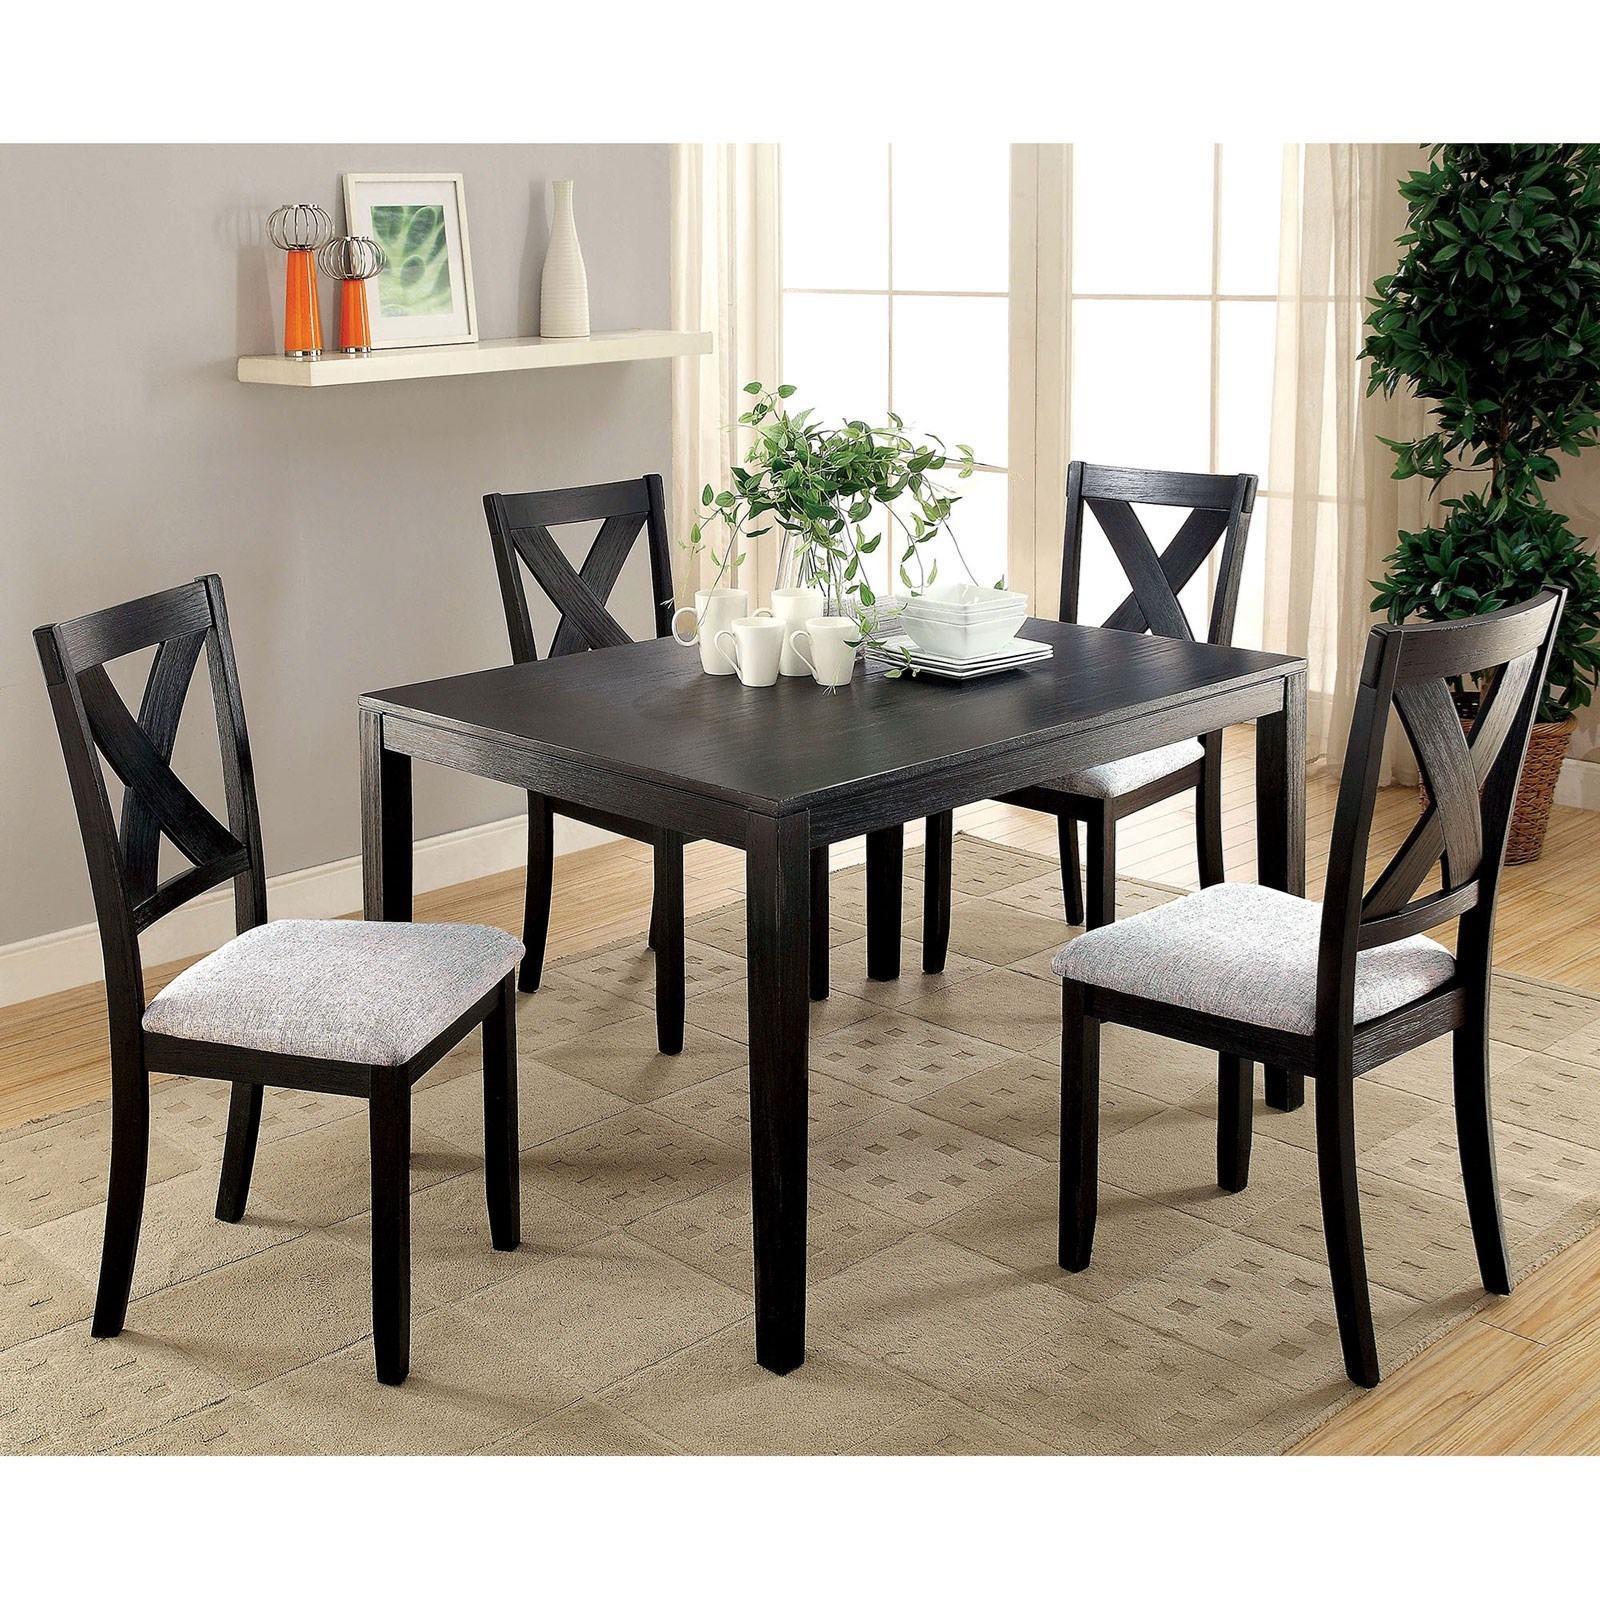 Inspiration about Rooms For Regarding Most Recent 5 Piece Dining Sets (#20 of 20)